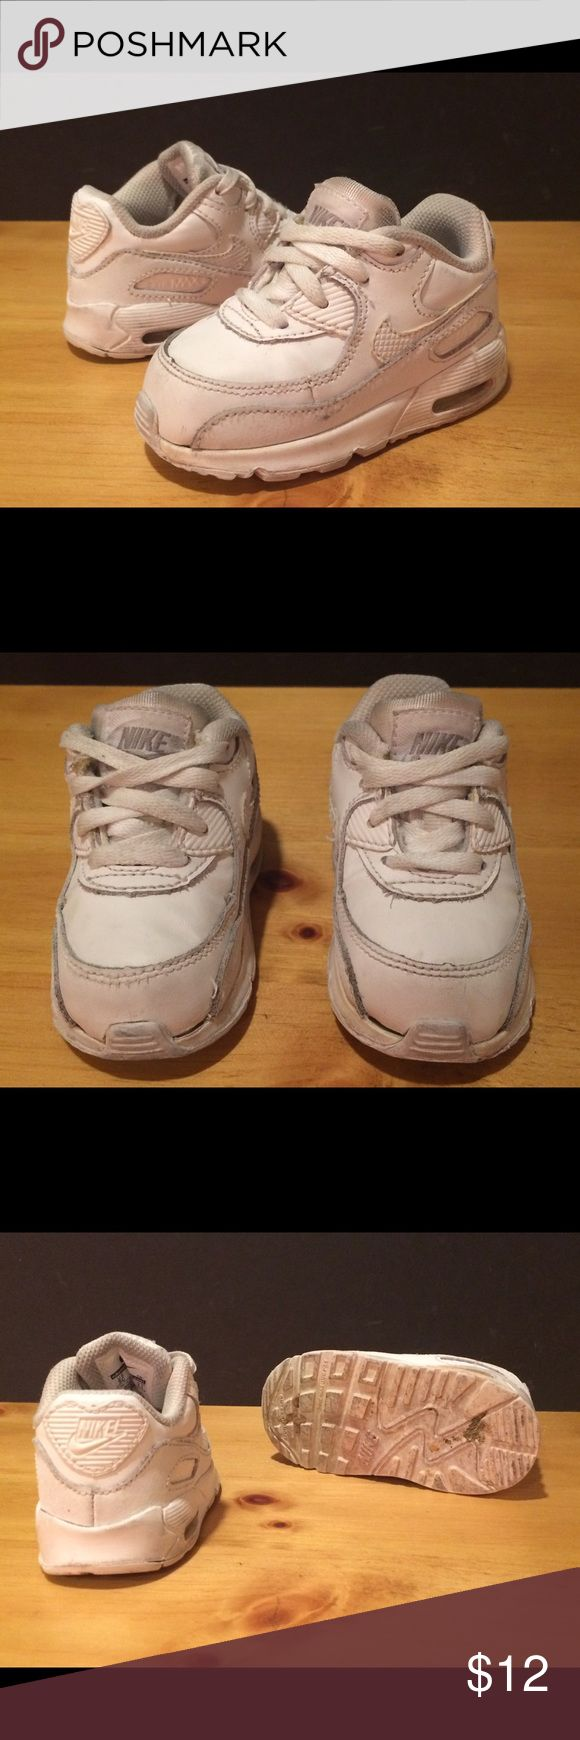 Baby Size 5C Nike Air Max White Shoes Baby size 5C white Nike Air Max shoes. See photos and please message with any questions! :) Nike Shoes Sneakers